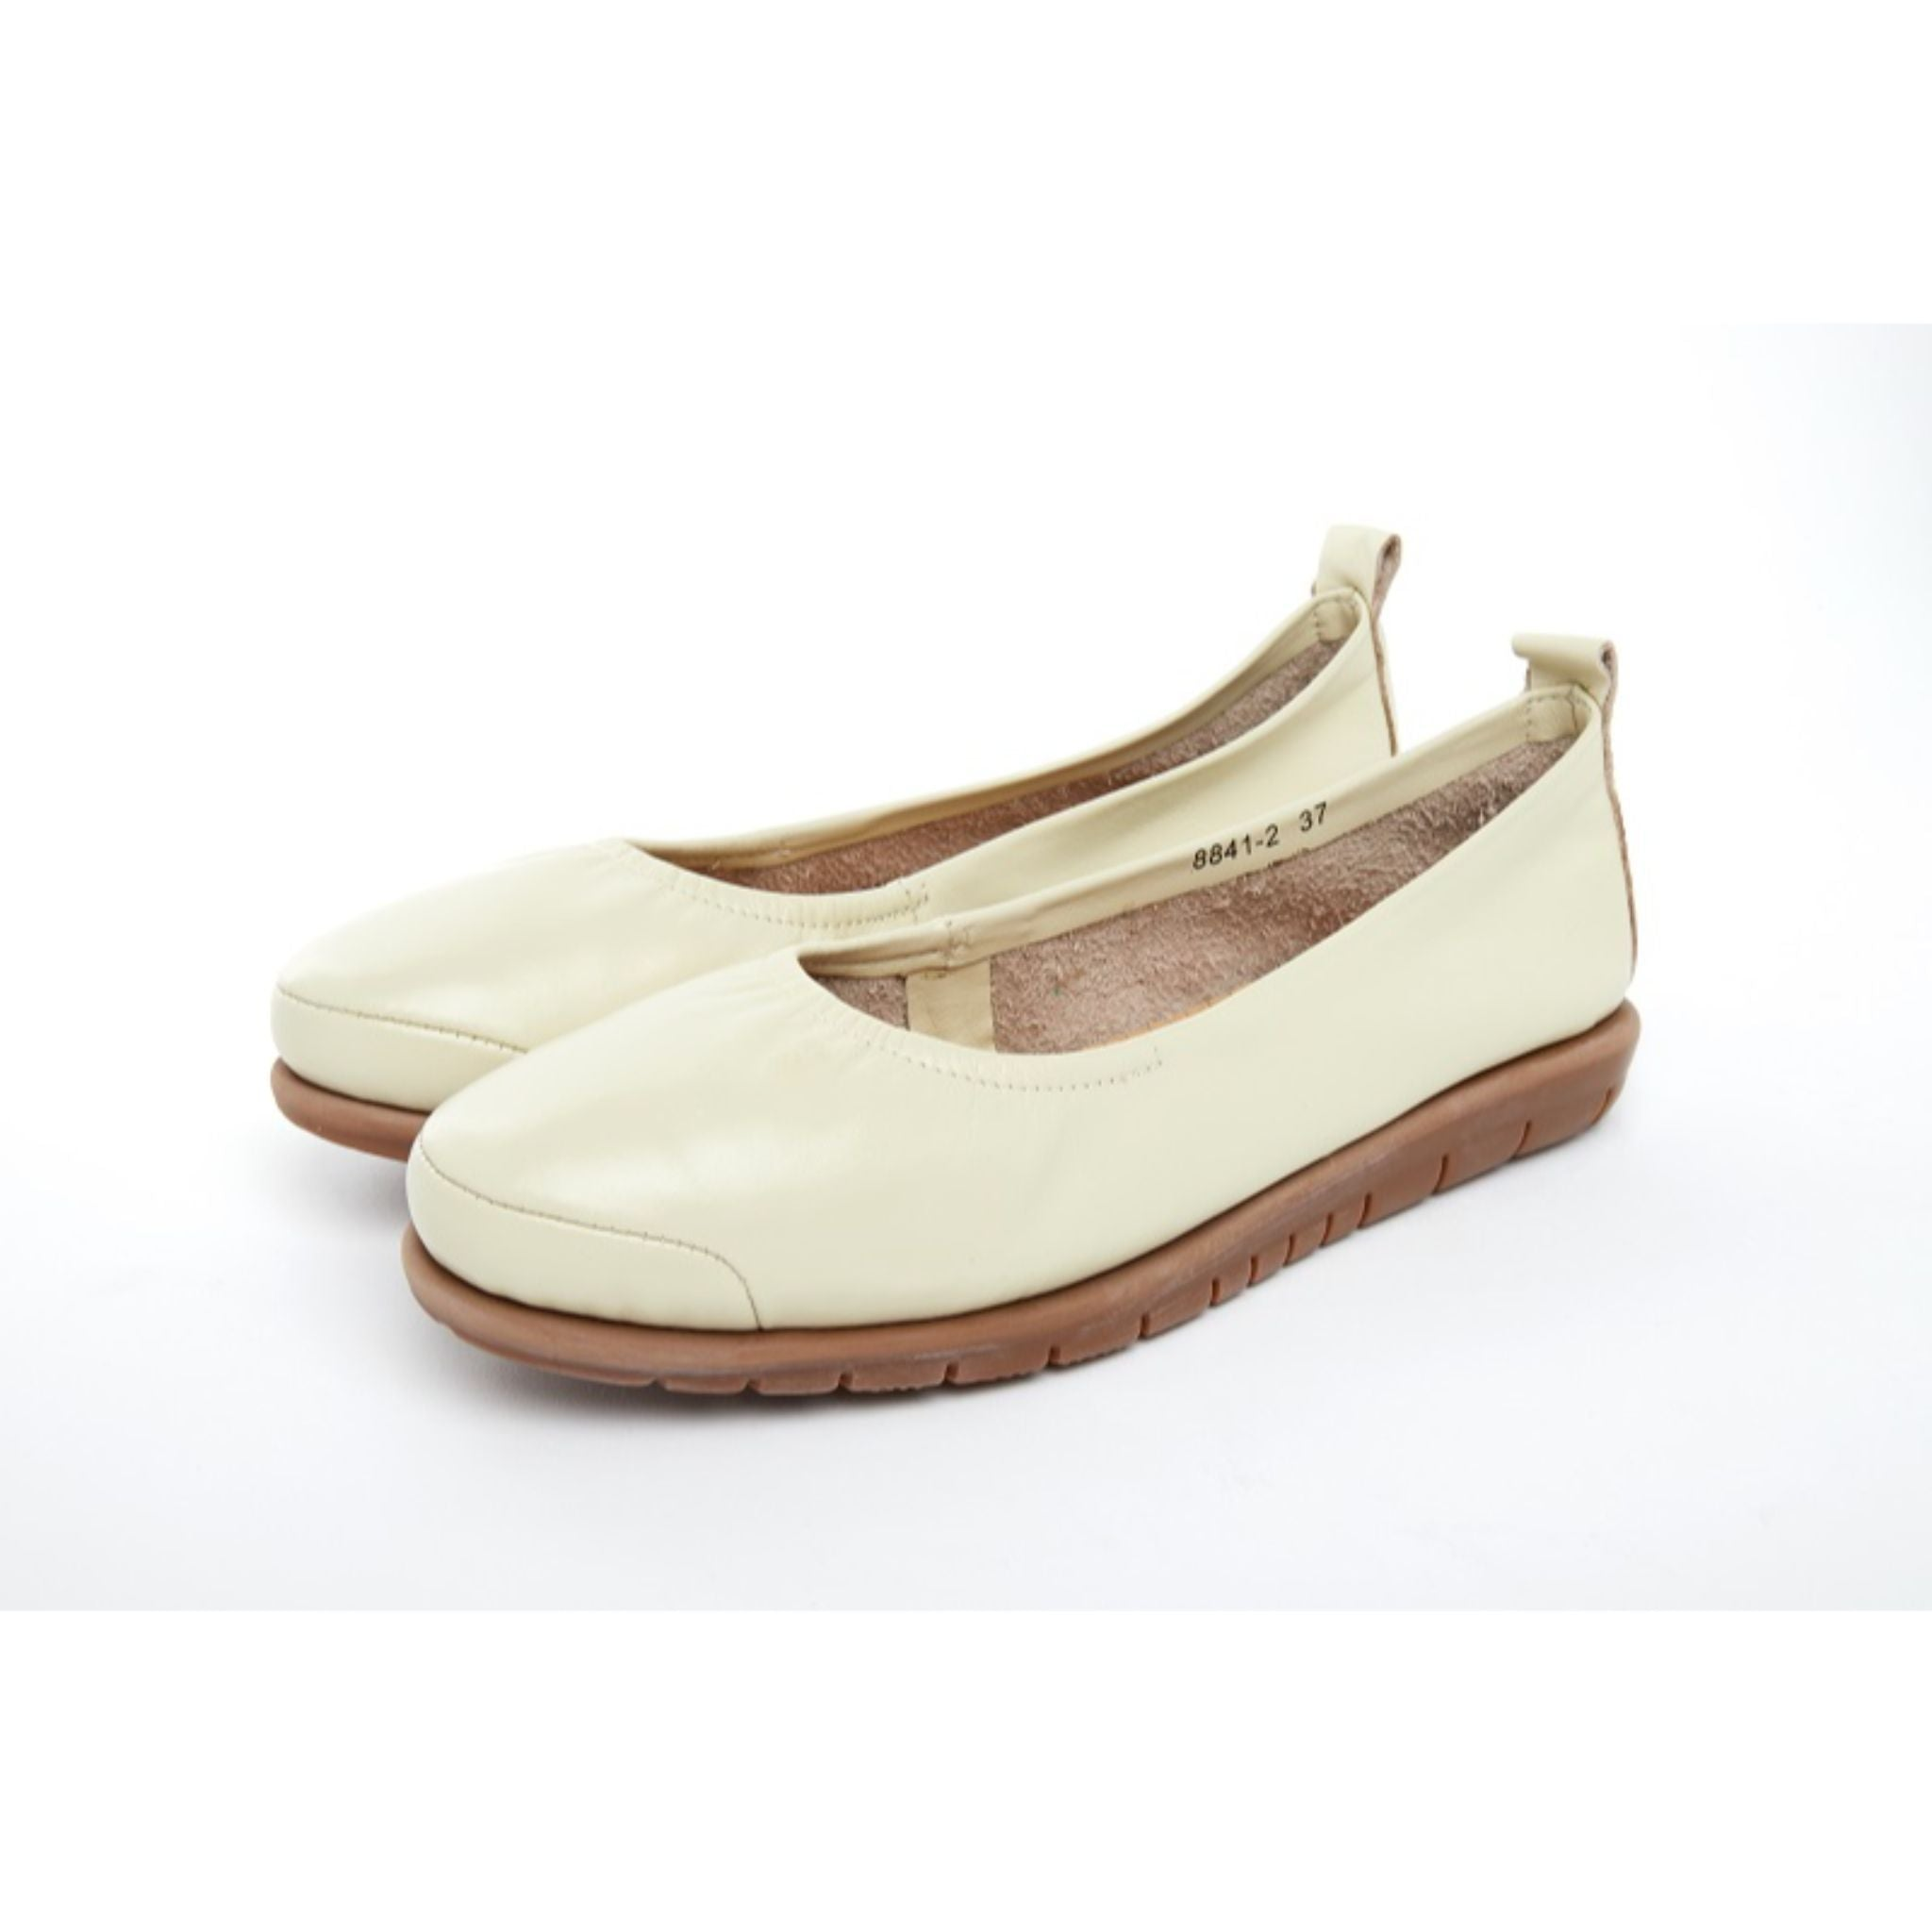 Barani Leather Pumps Ballet Flats 8841-2 Bone